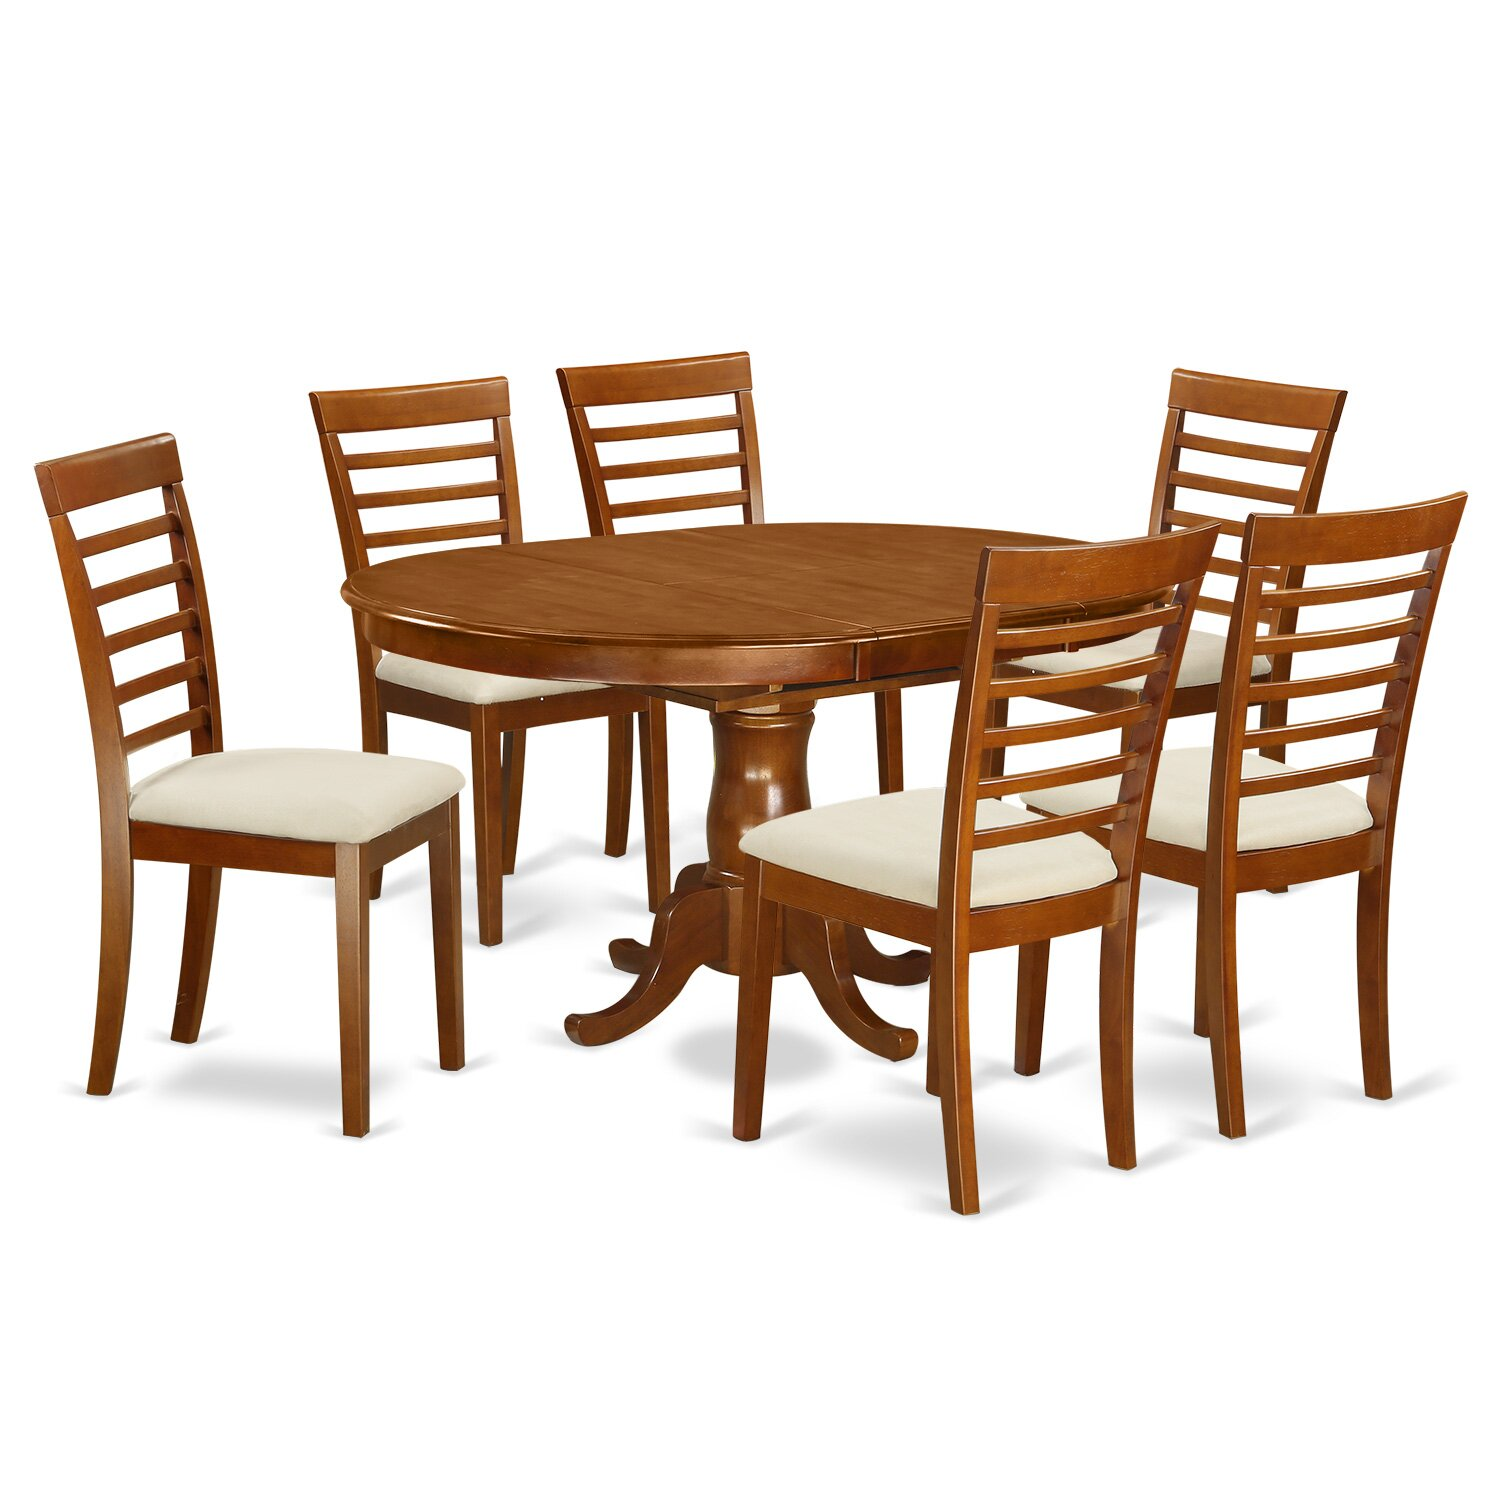 east west portland 7 piece dining set reviews wayfair